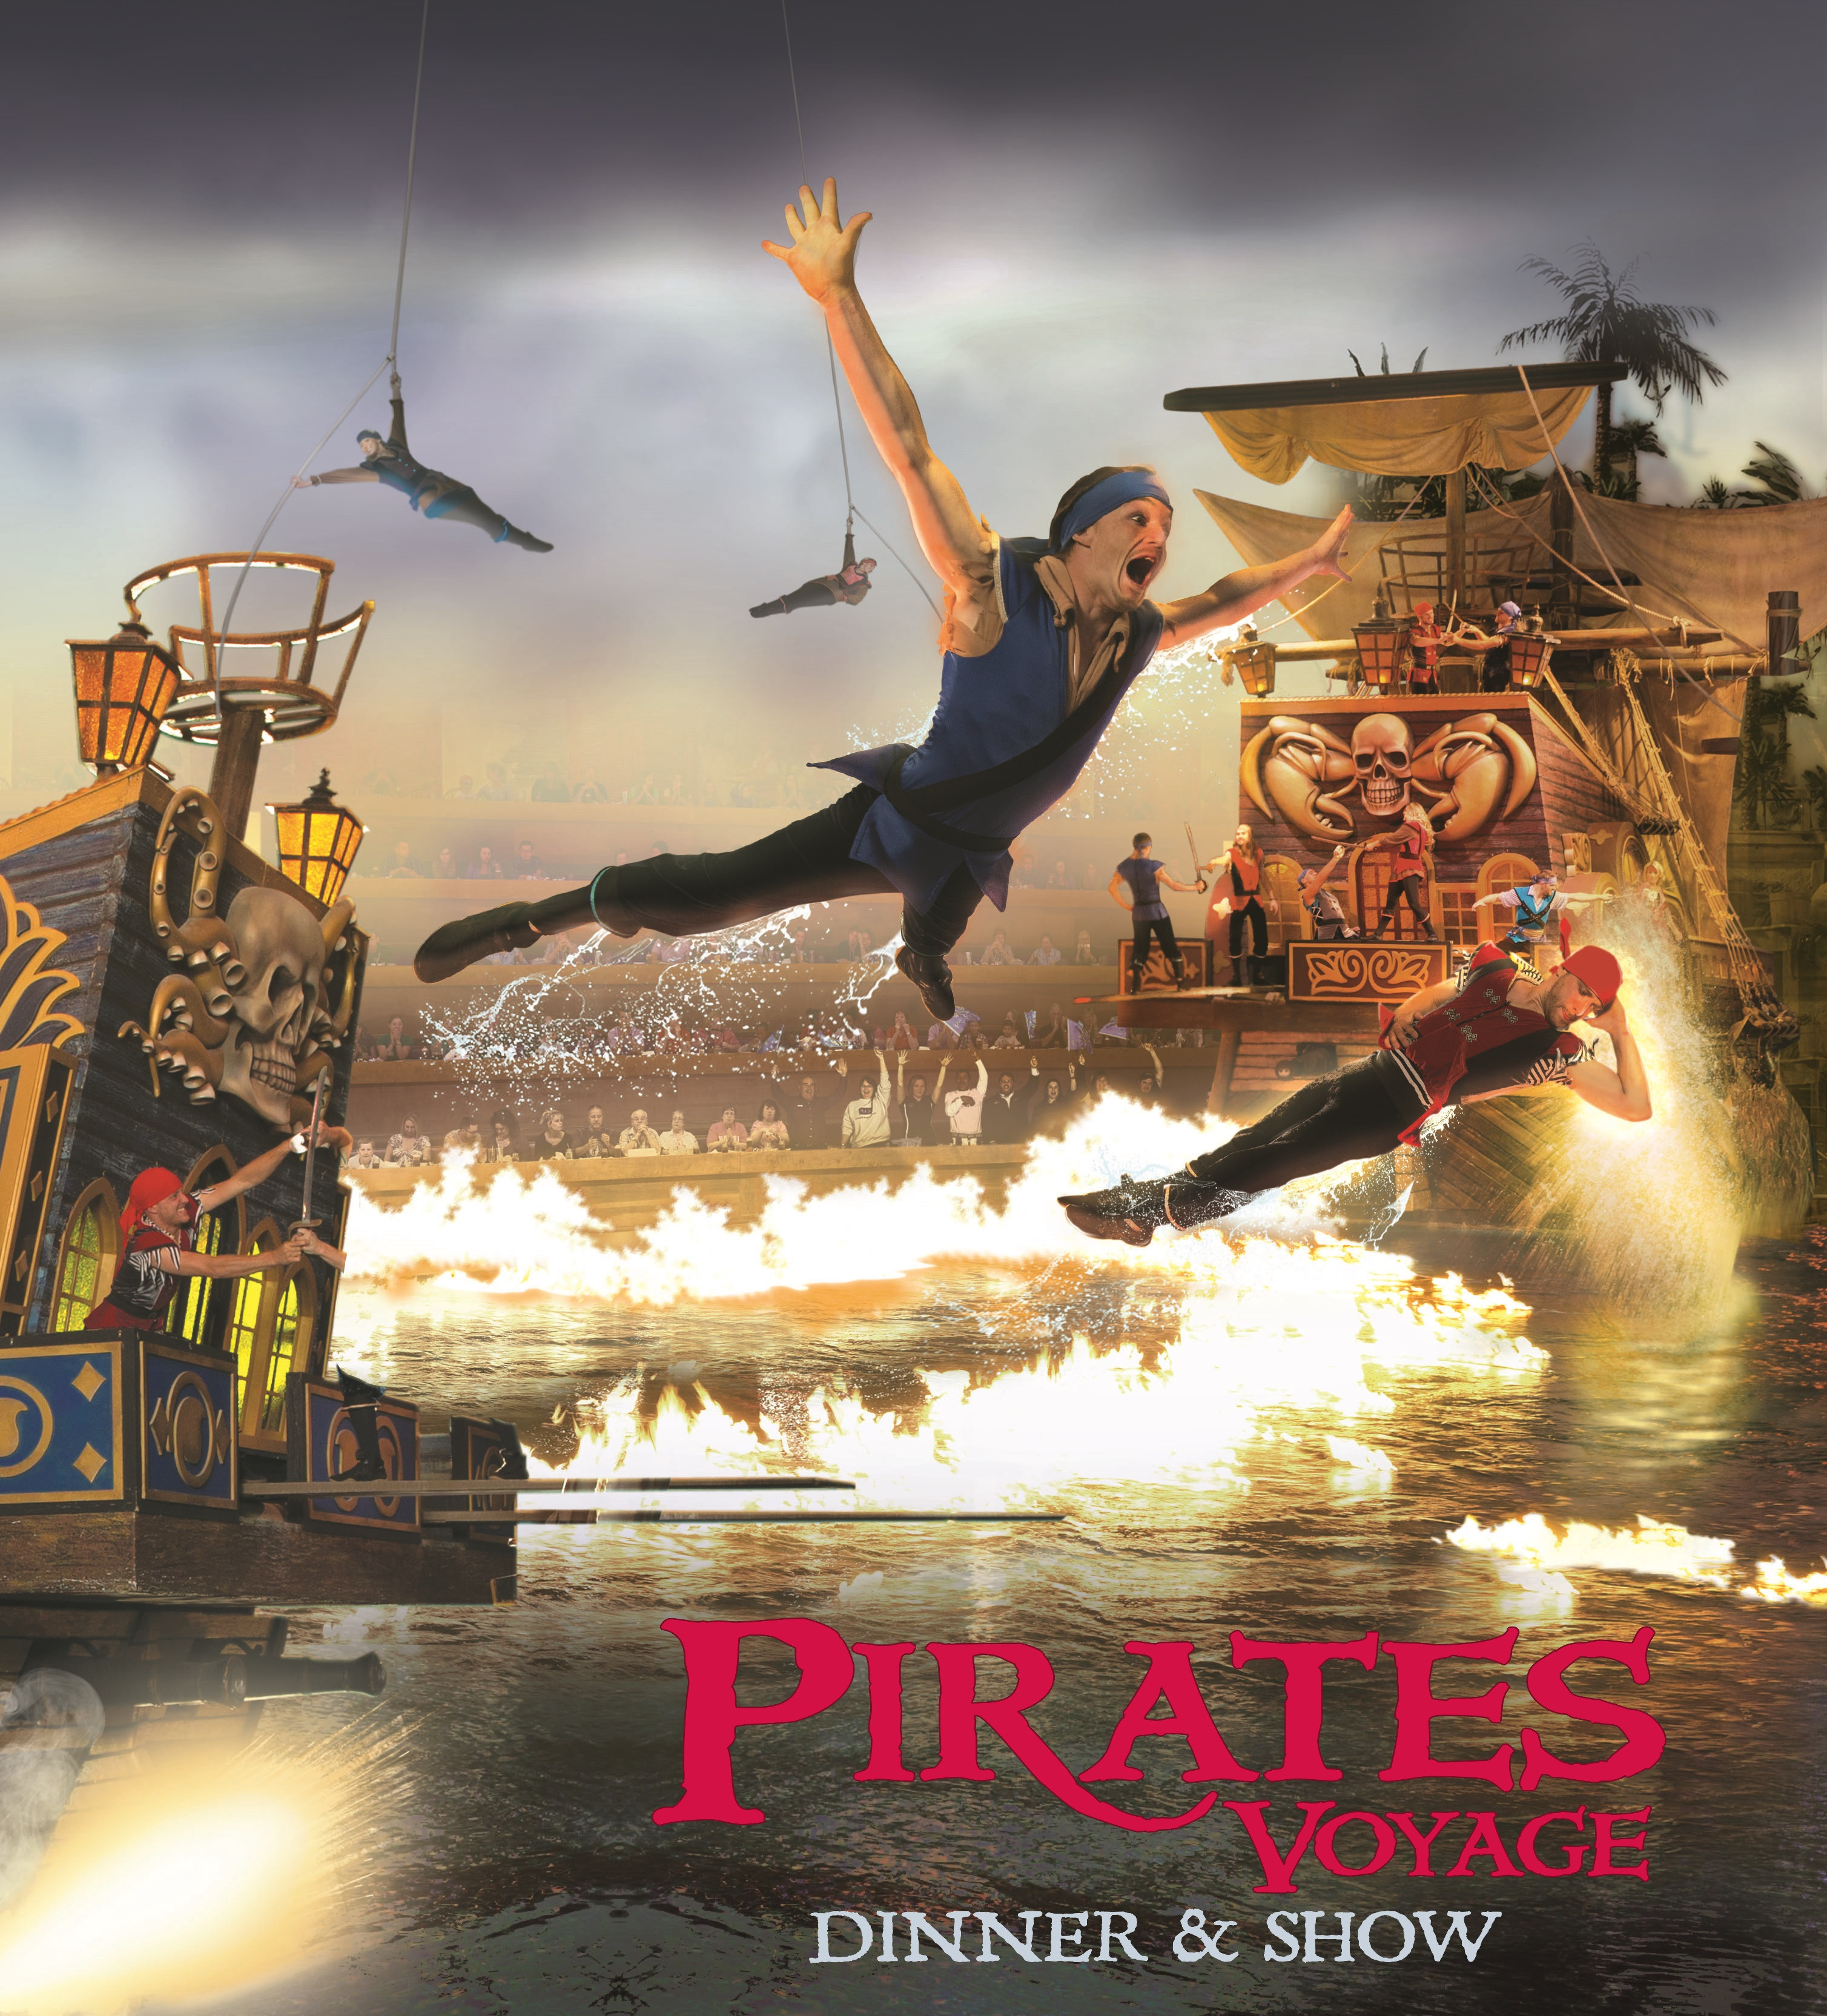 Pirate Dinner Show Myrtle Beach  Pirates Voyage in Myrtle Beach South Carolina Food Fun